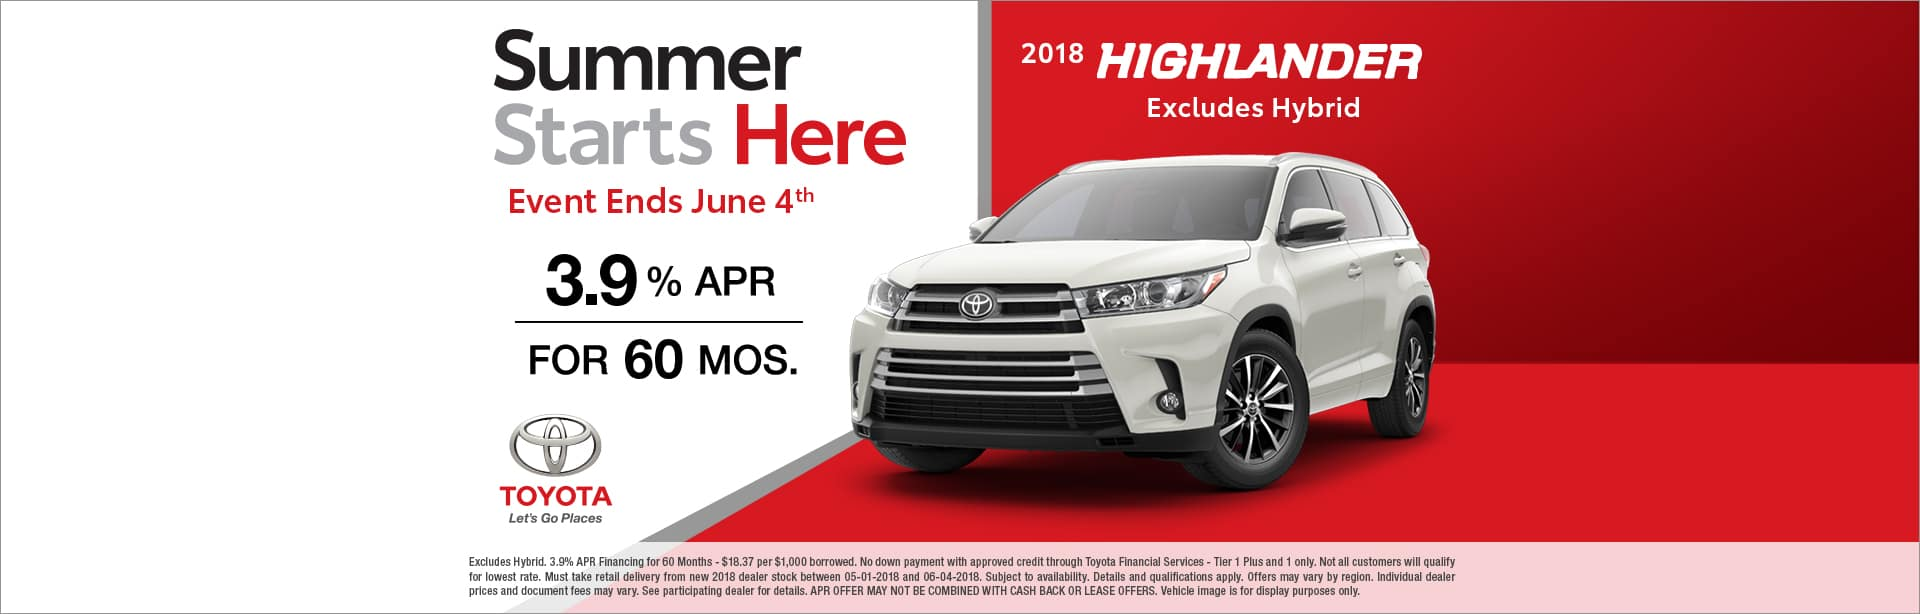 2018 Toyota Highlander Back to Summer Offer